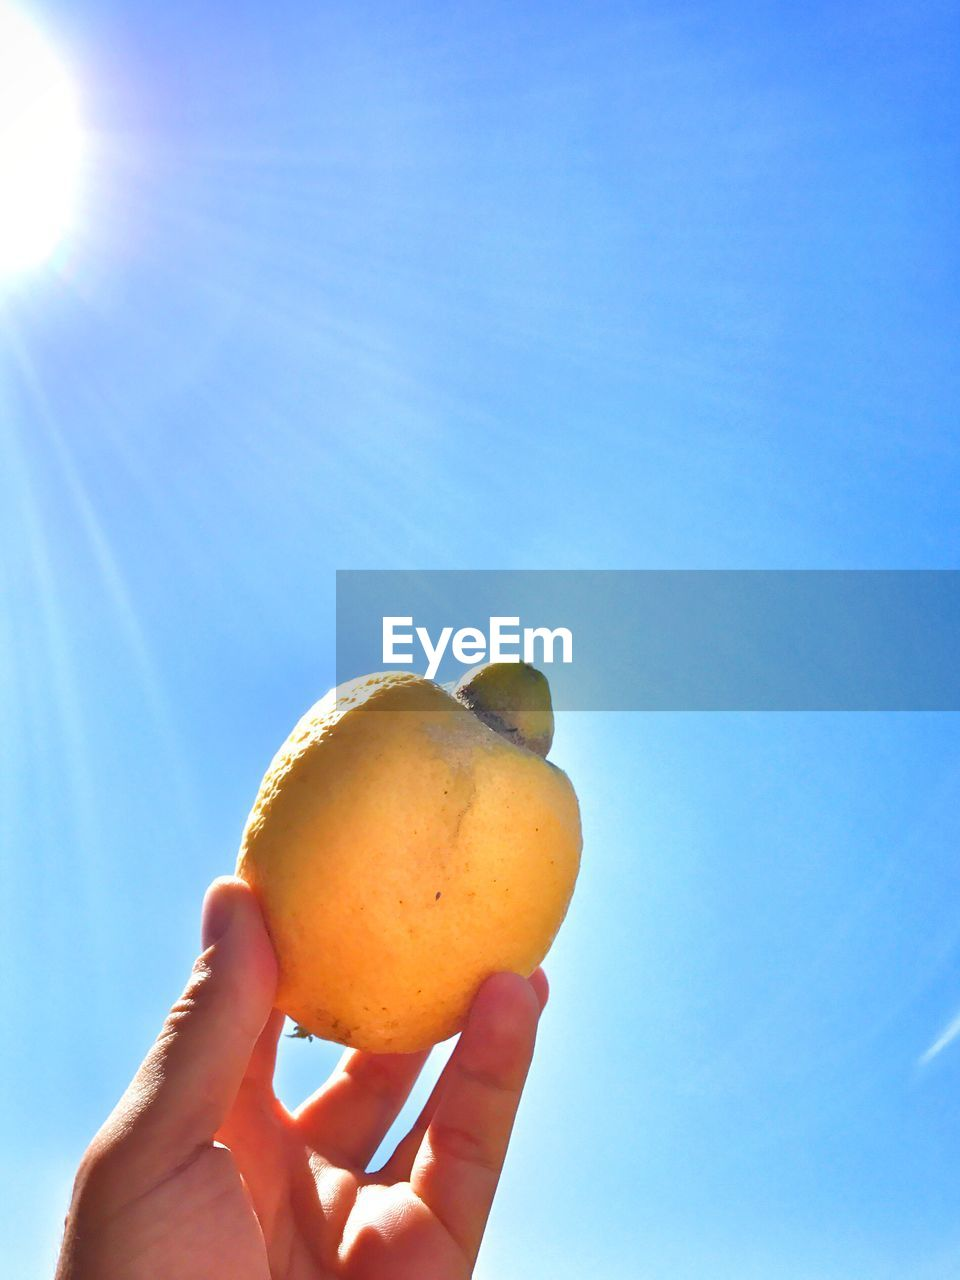 human hand, one person, human body part, holding, blue, food and drink, fruit, sunlight, real people, sky, outdoors, healthy eating, low angle view, food, day, freshness, clear sky, nature, lifestyles, healthy lifestyle, beauty in nature, close-up, people